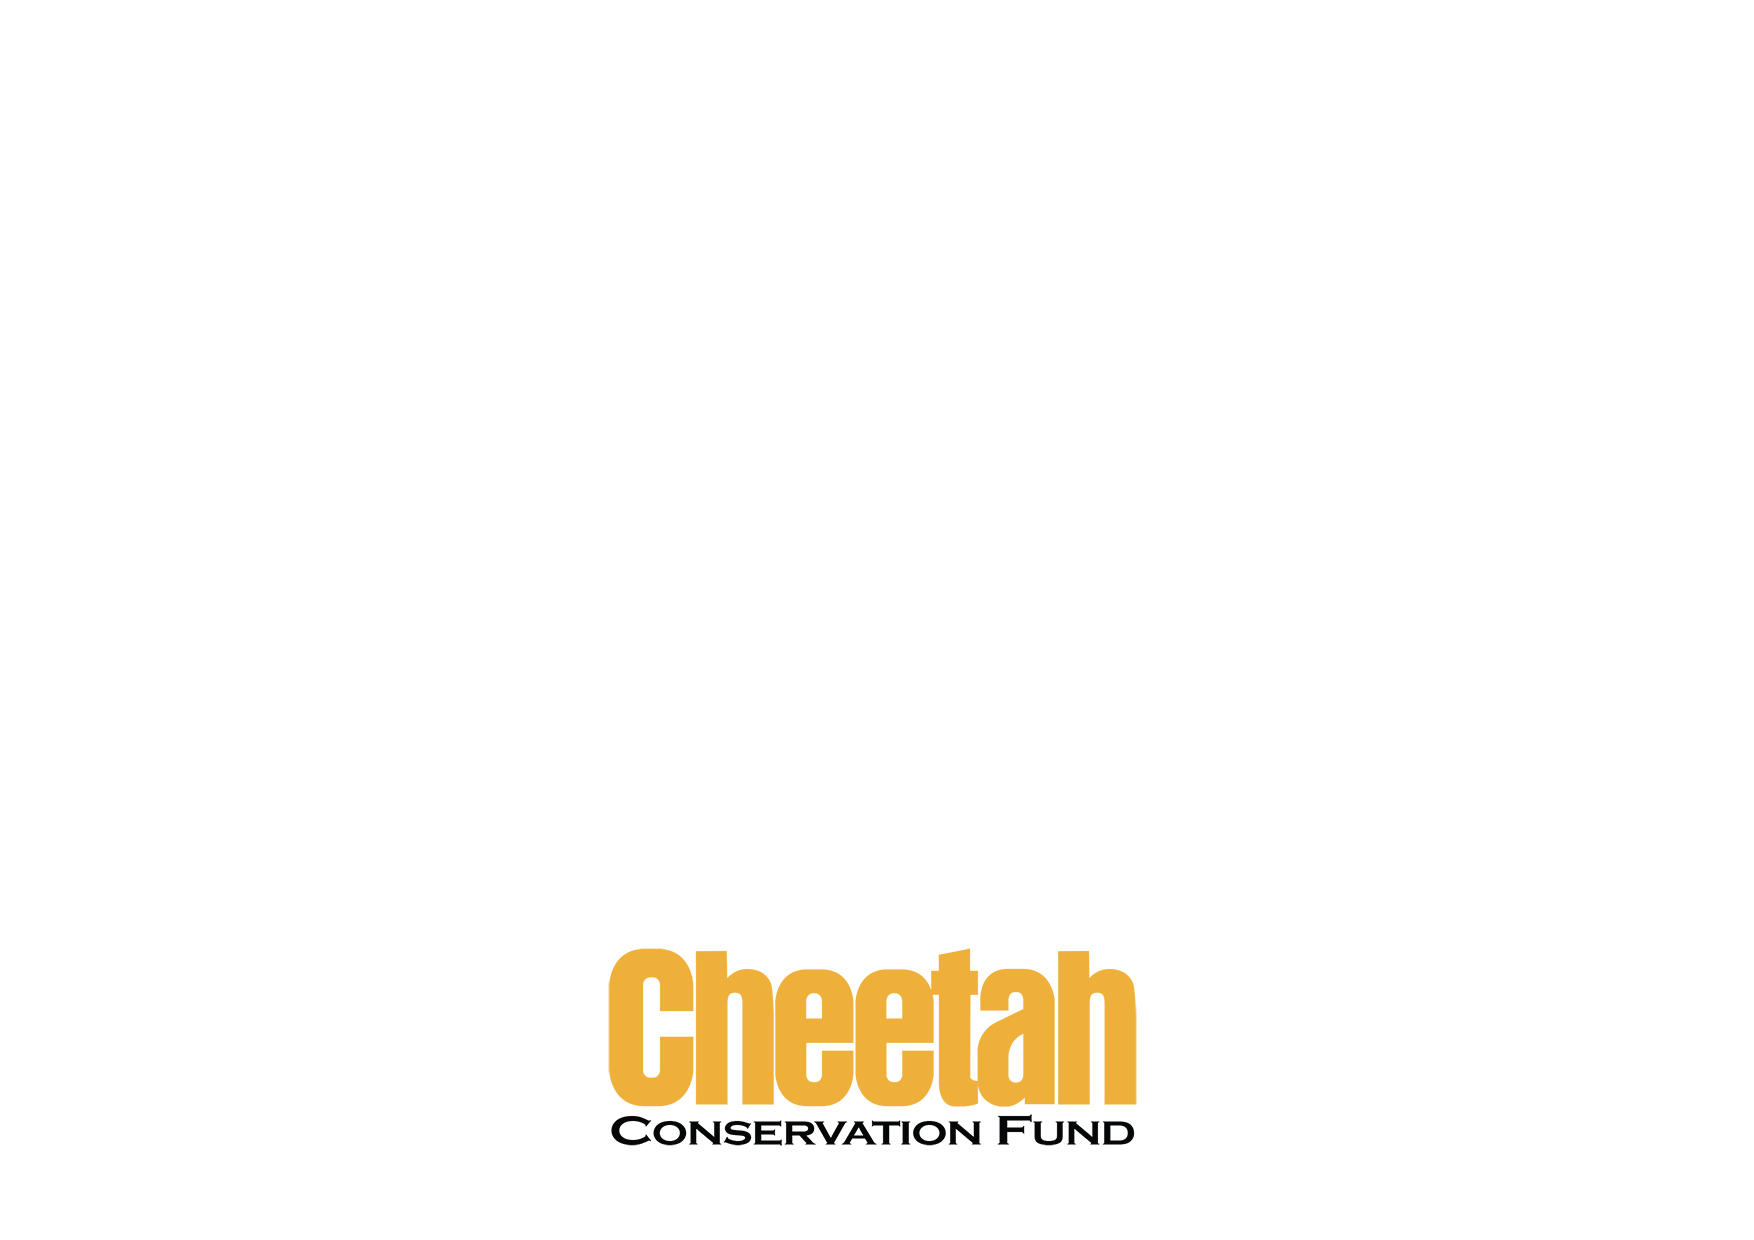 Cheetah Conservation Fund Brand Book (1)-20.jpg